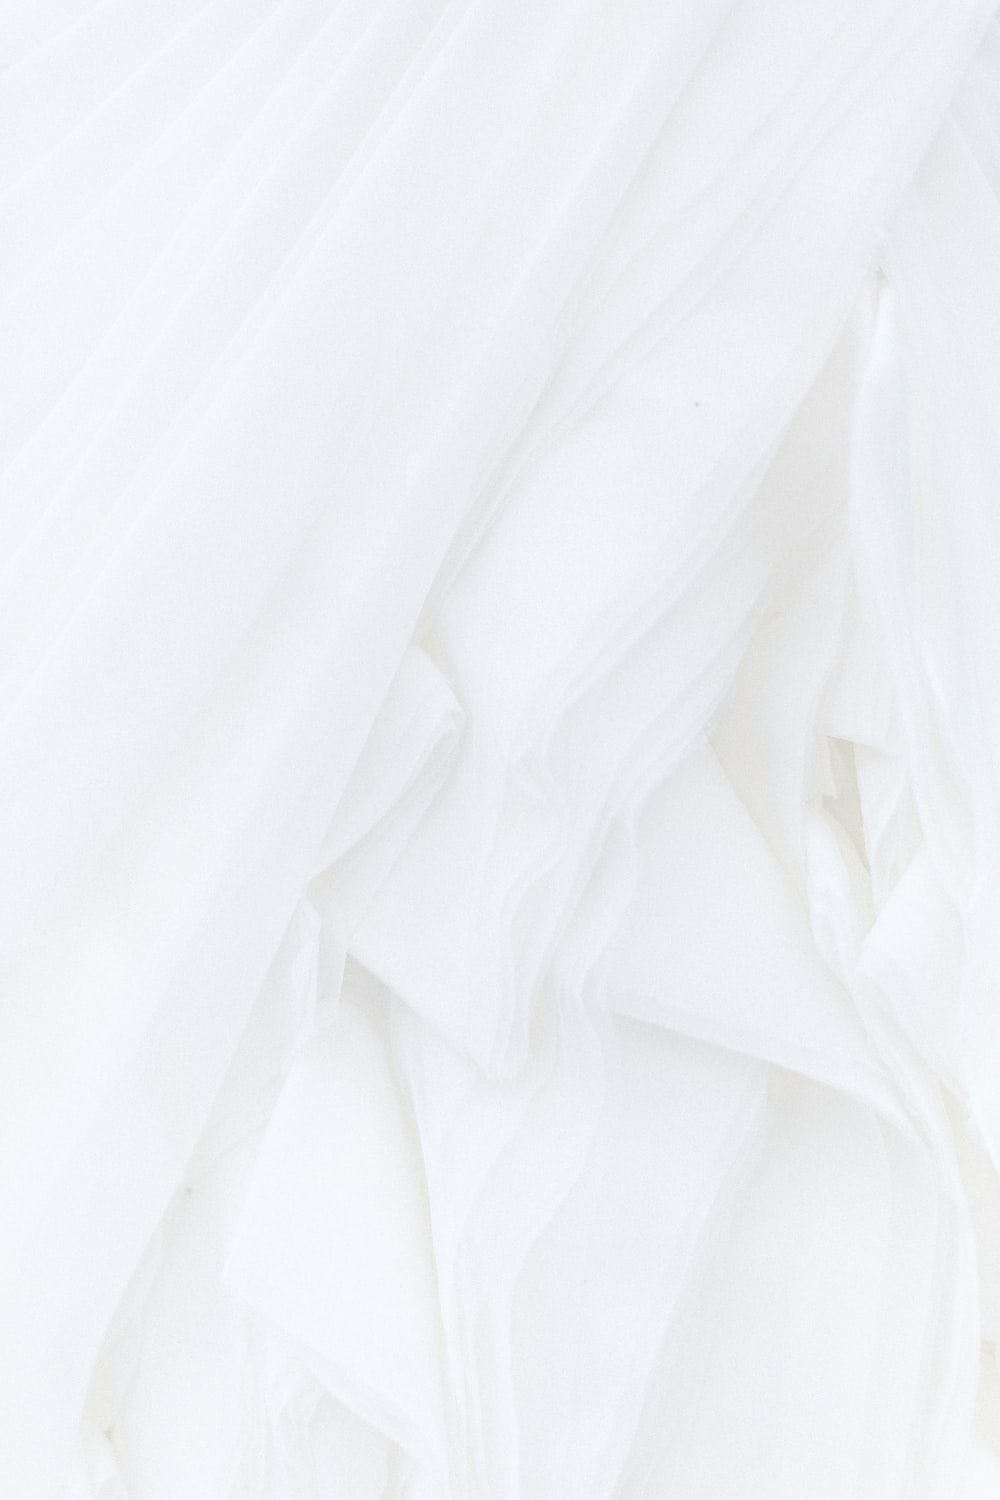 white textile in close up photography